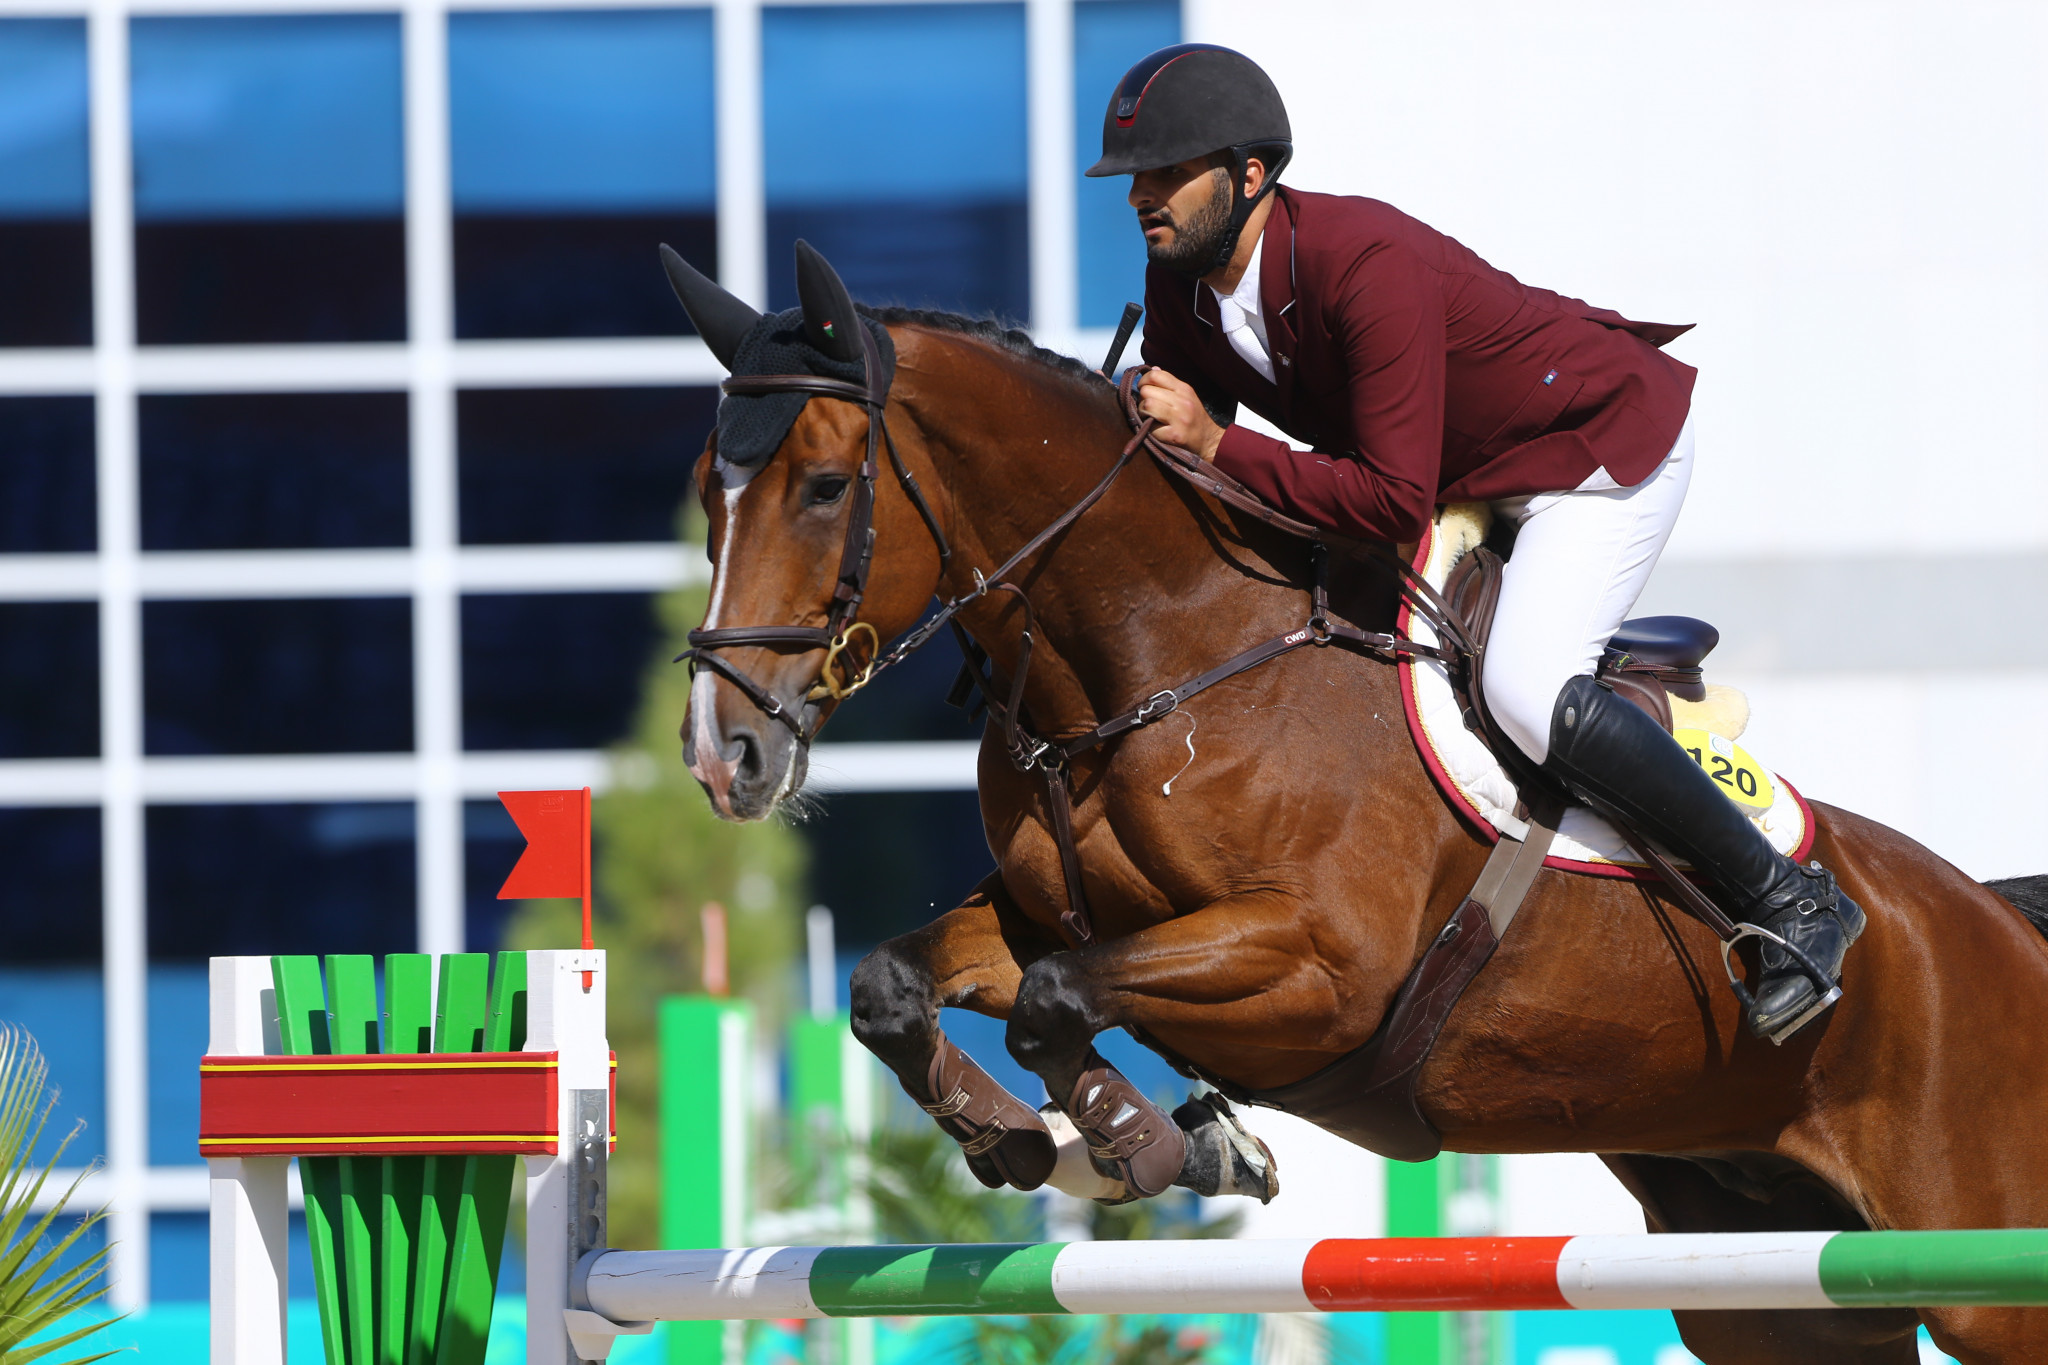 Qatari clinches individual jumping crown on final day of Ashgabat 2017 equestrian action